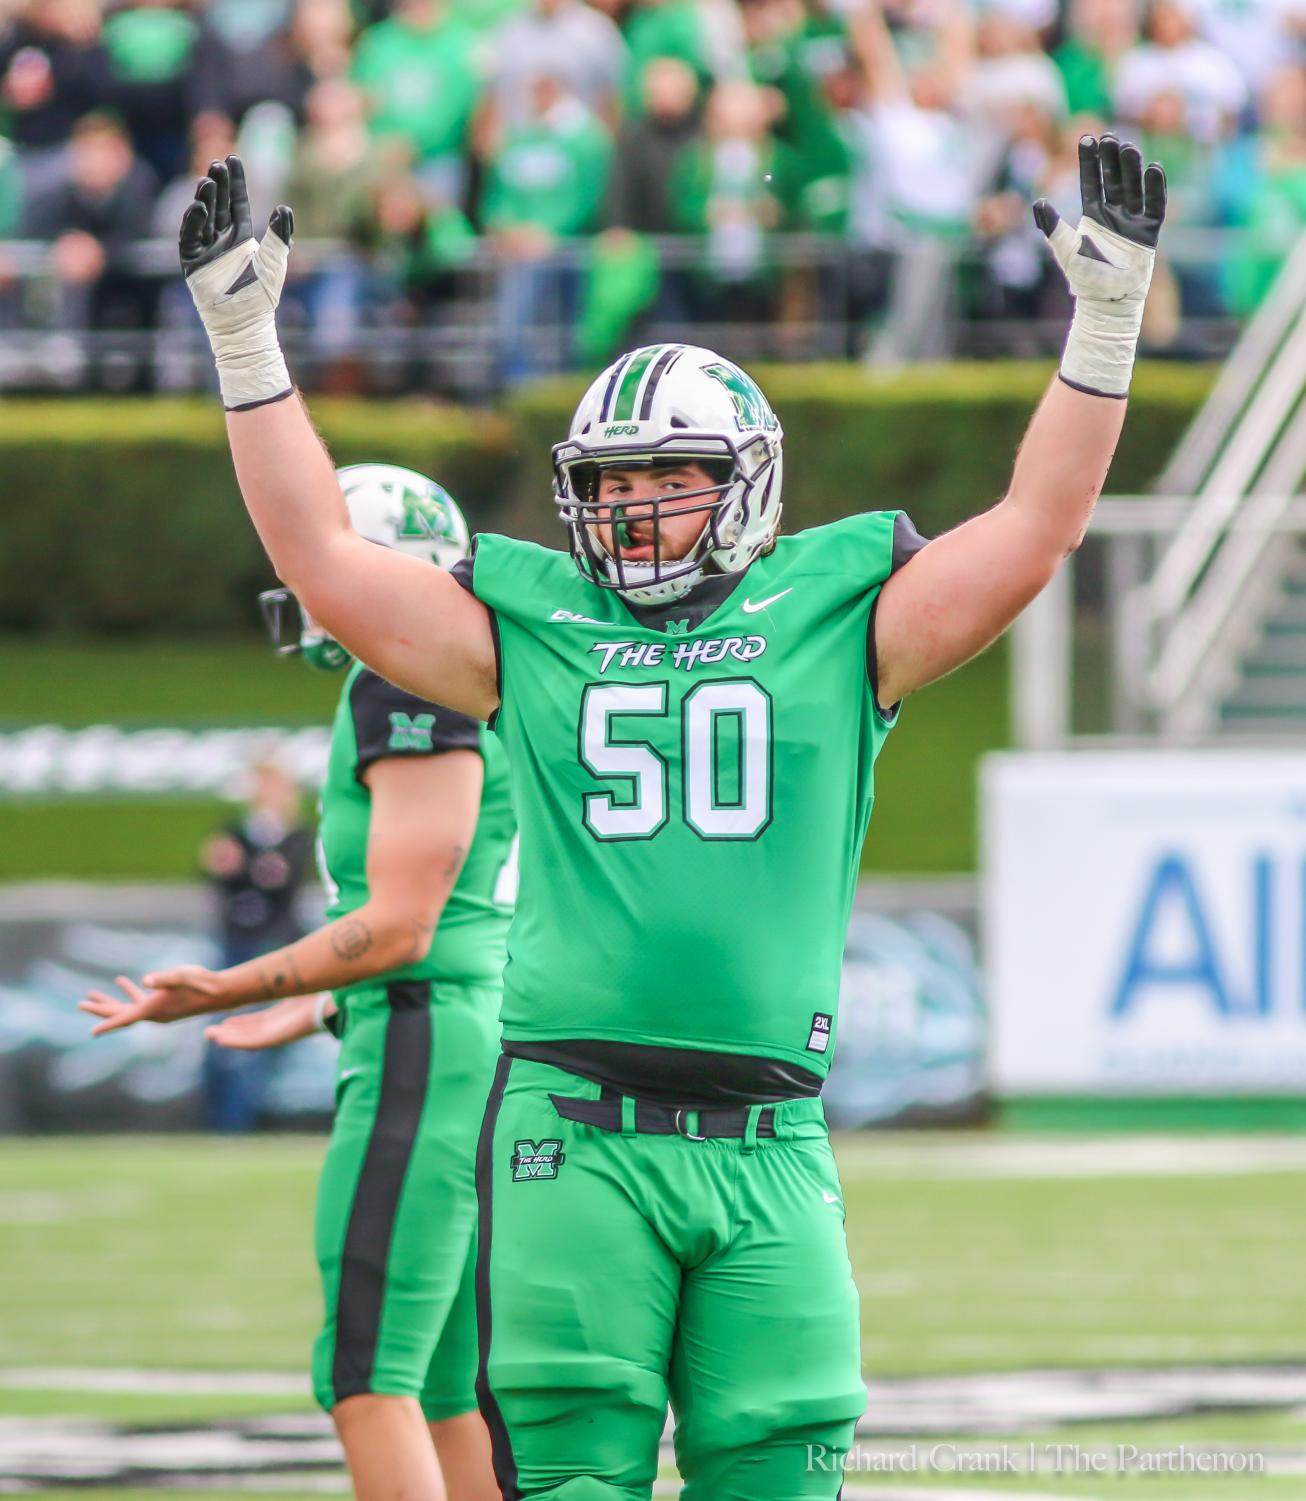 Redshirt sophomore offensive lineman Will Ulmer raises his arms in celebration after a Marshall score against FAU.